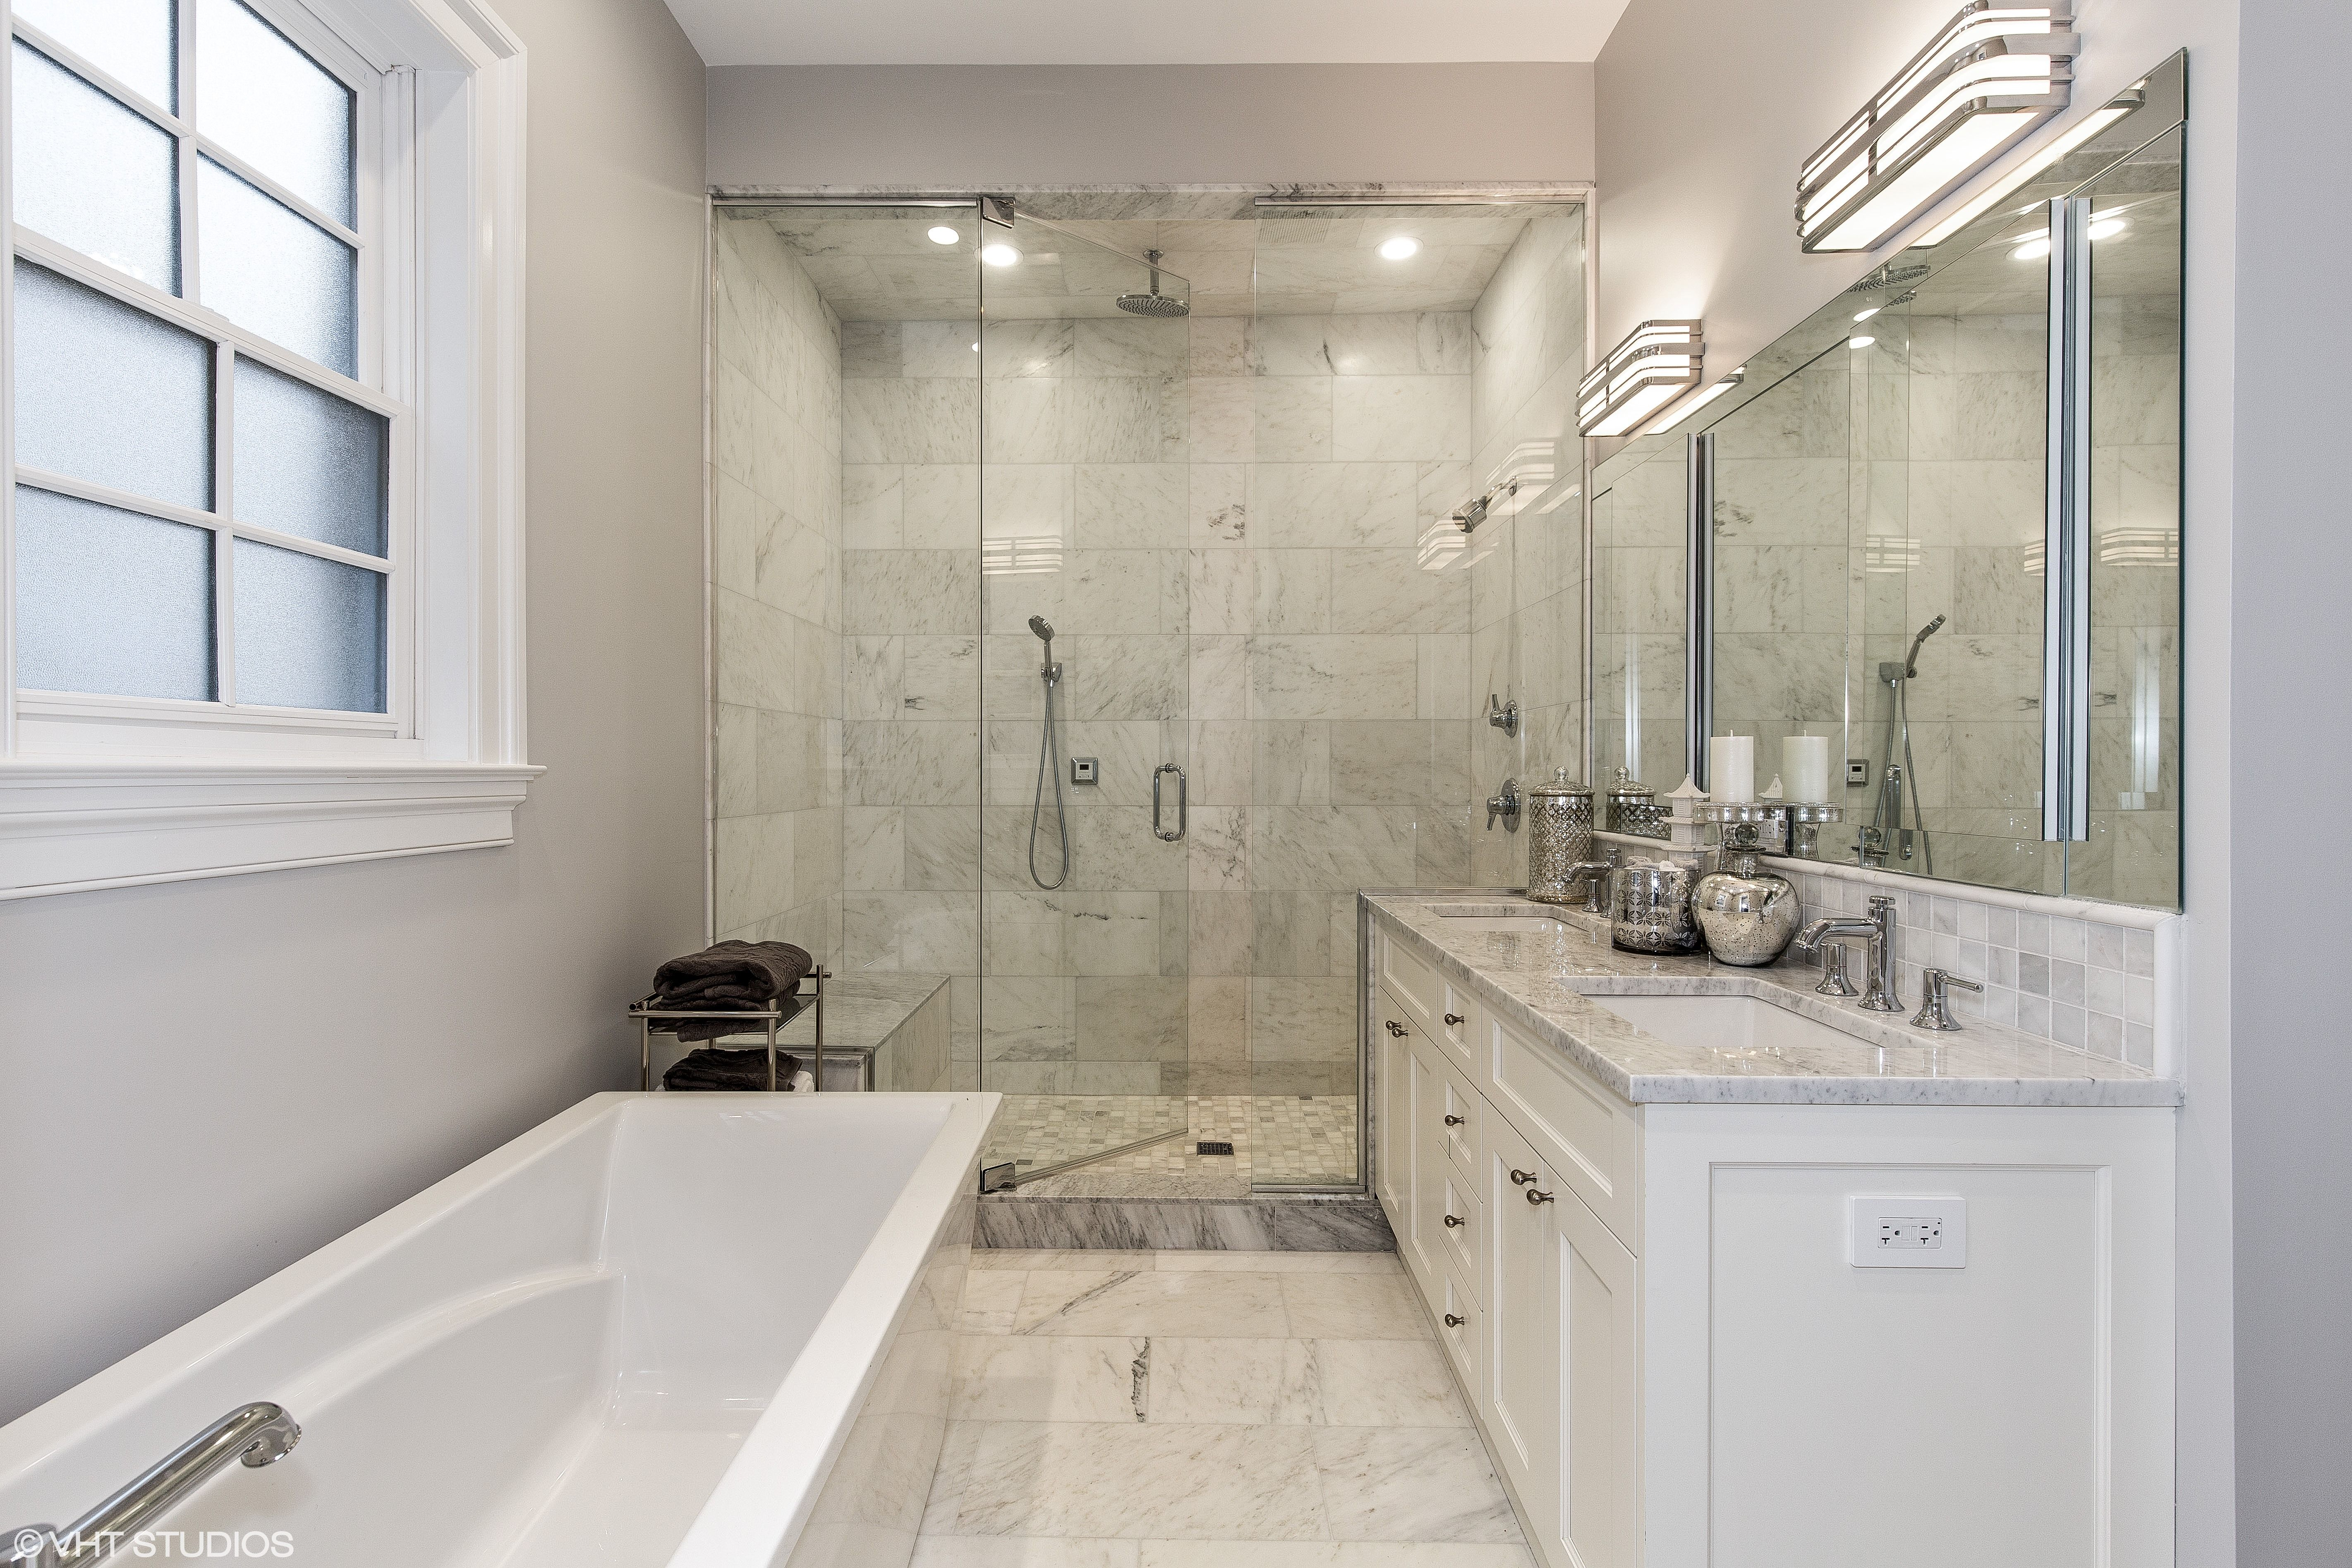 Master Bath Soaking Tub Double Vanity Separate Double Shower Heated Floors Chicago Master Bathroom Layout Small Master Bathroom Small Bathroom Remodel